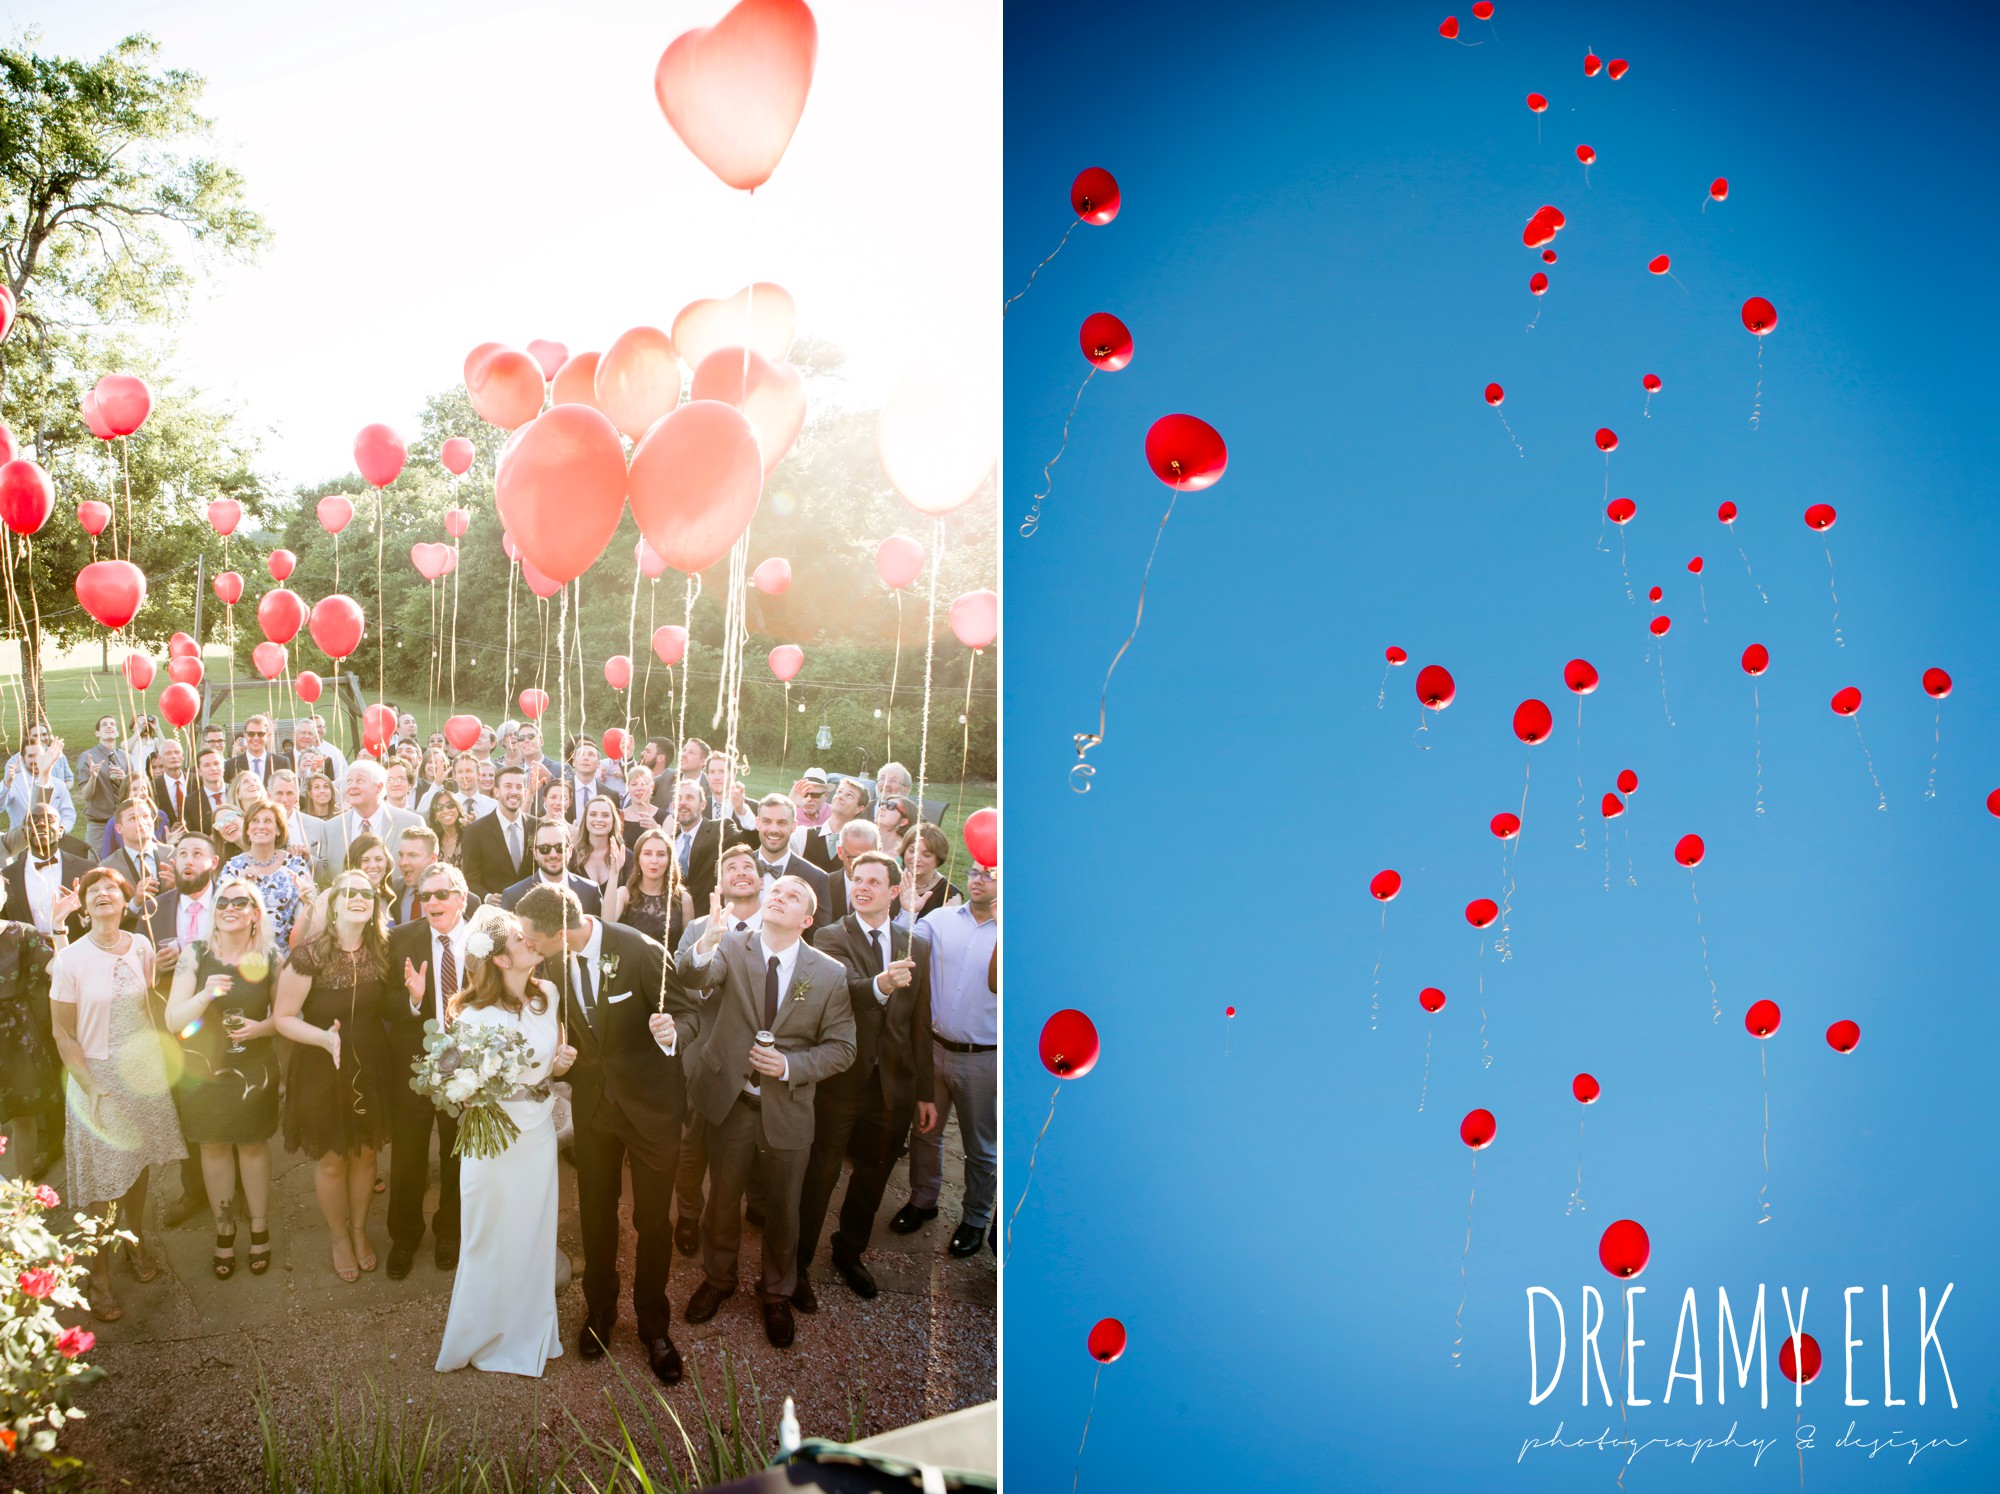 releasing balloons at wedding, guests, red heart balloons, outdoor april spring wedding photo, double creek crossing, college station, texas, austin wedding photographer {dreamy elk photography and design}